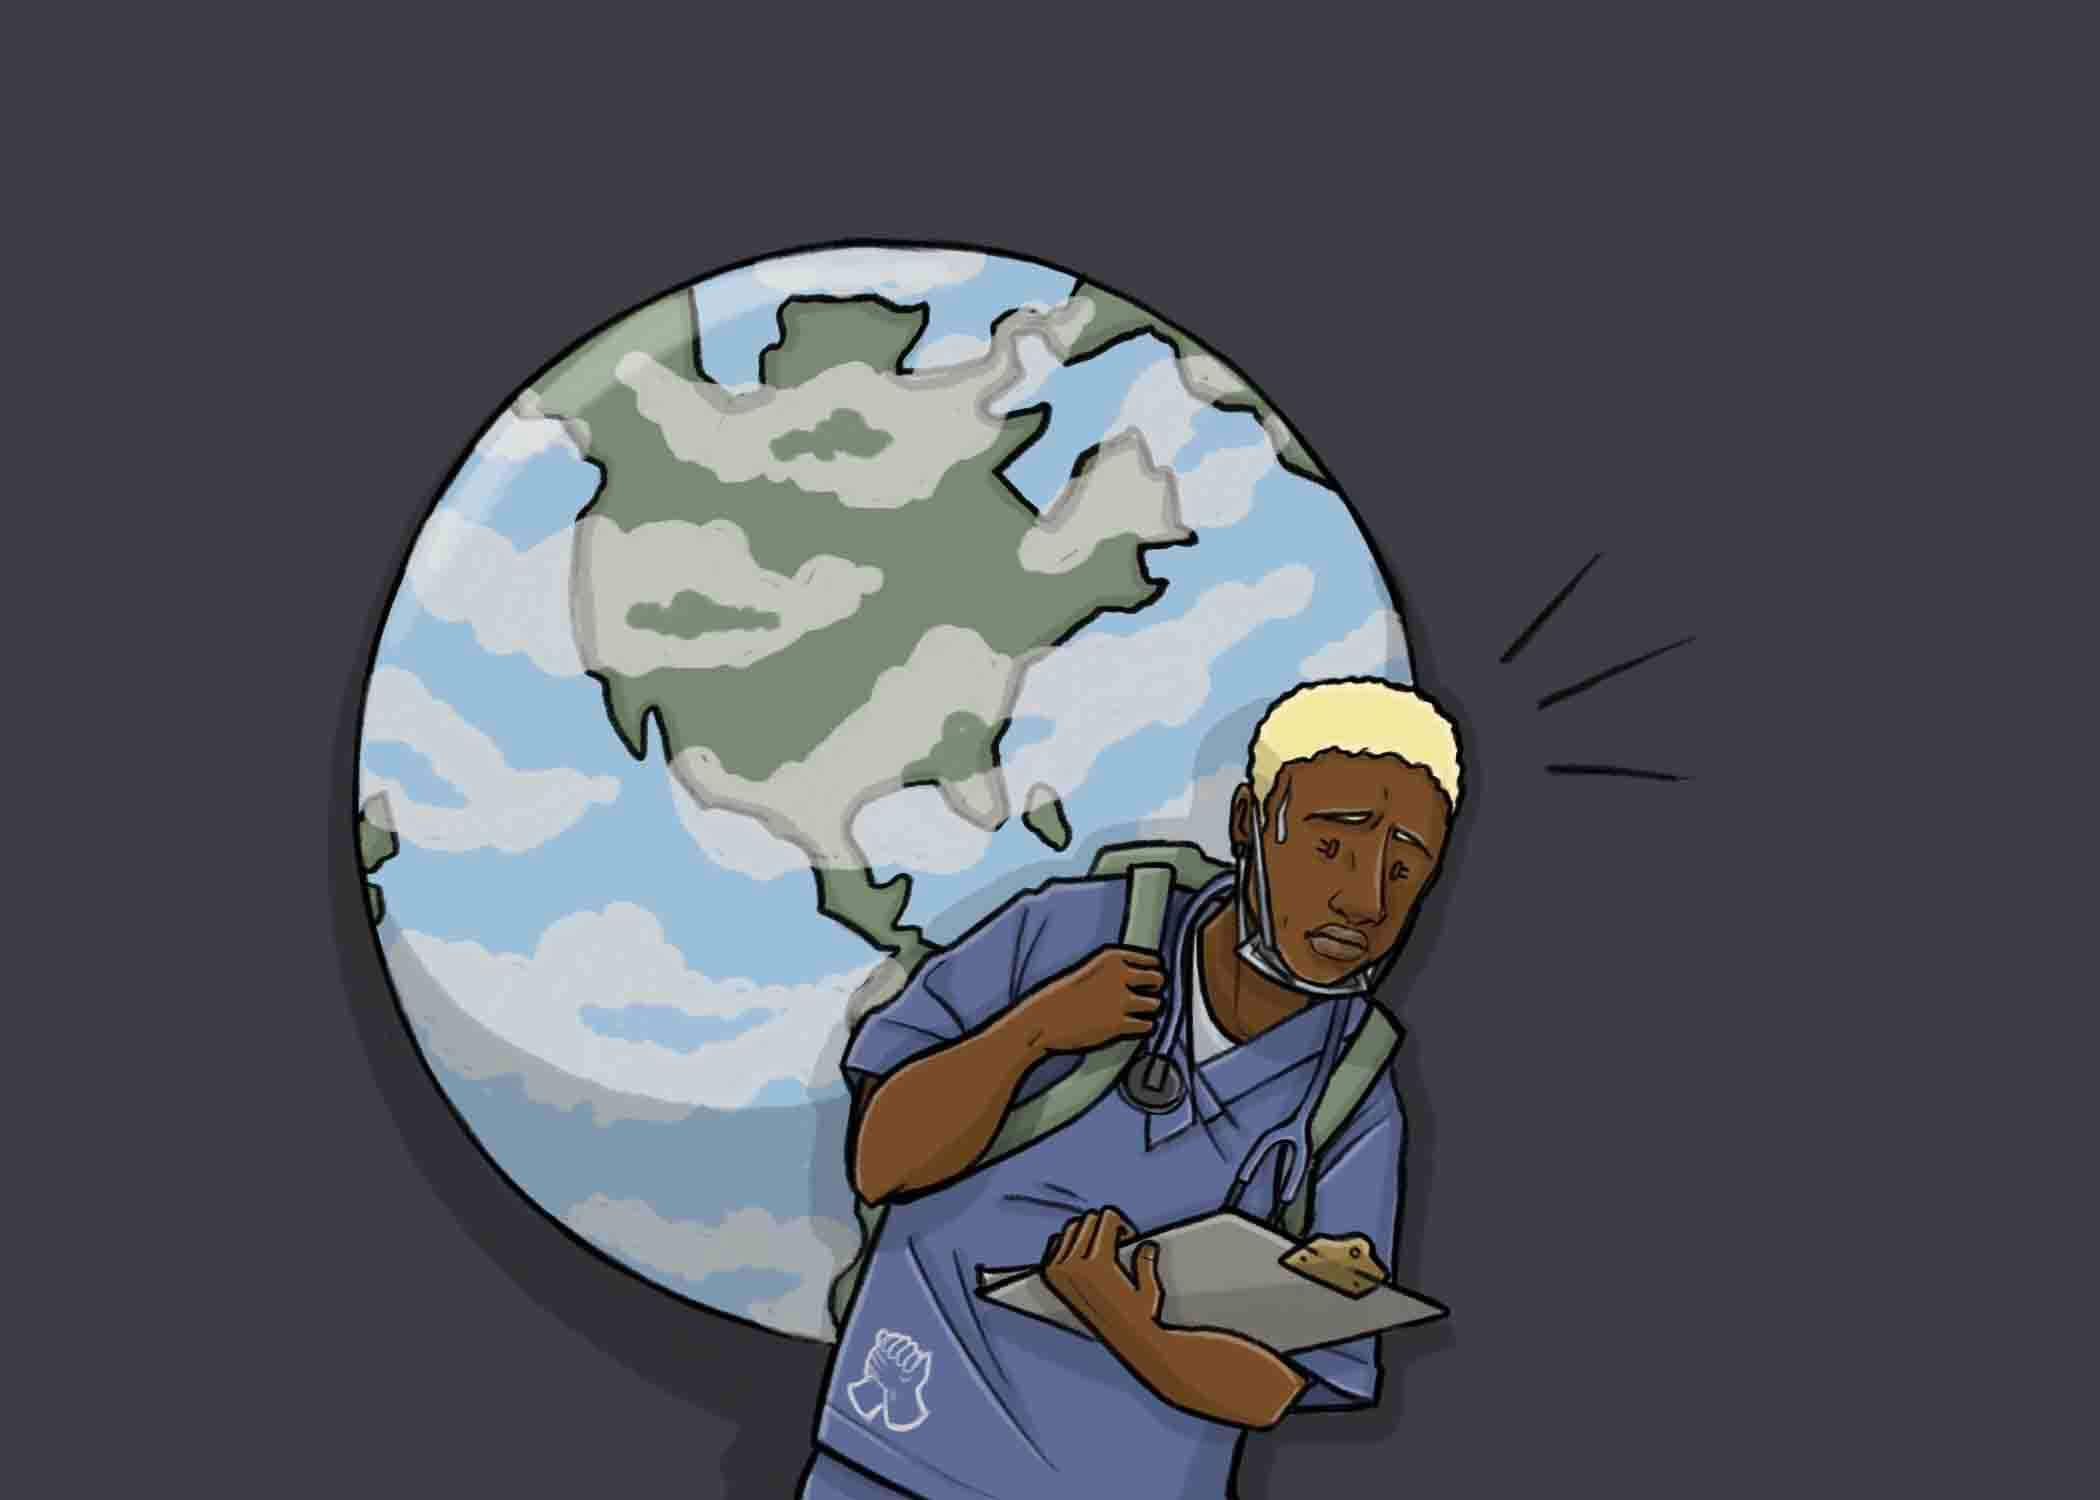 this is a drawing of a black nurse carrying the world on her back